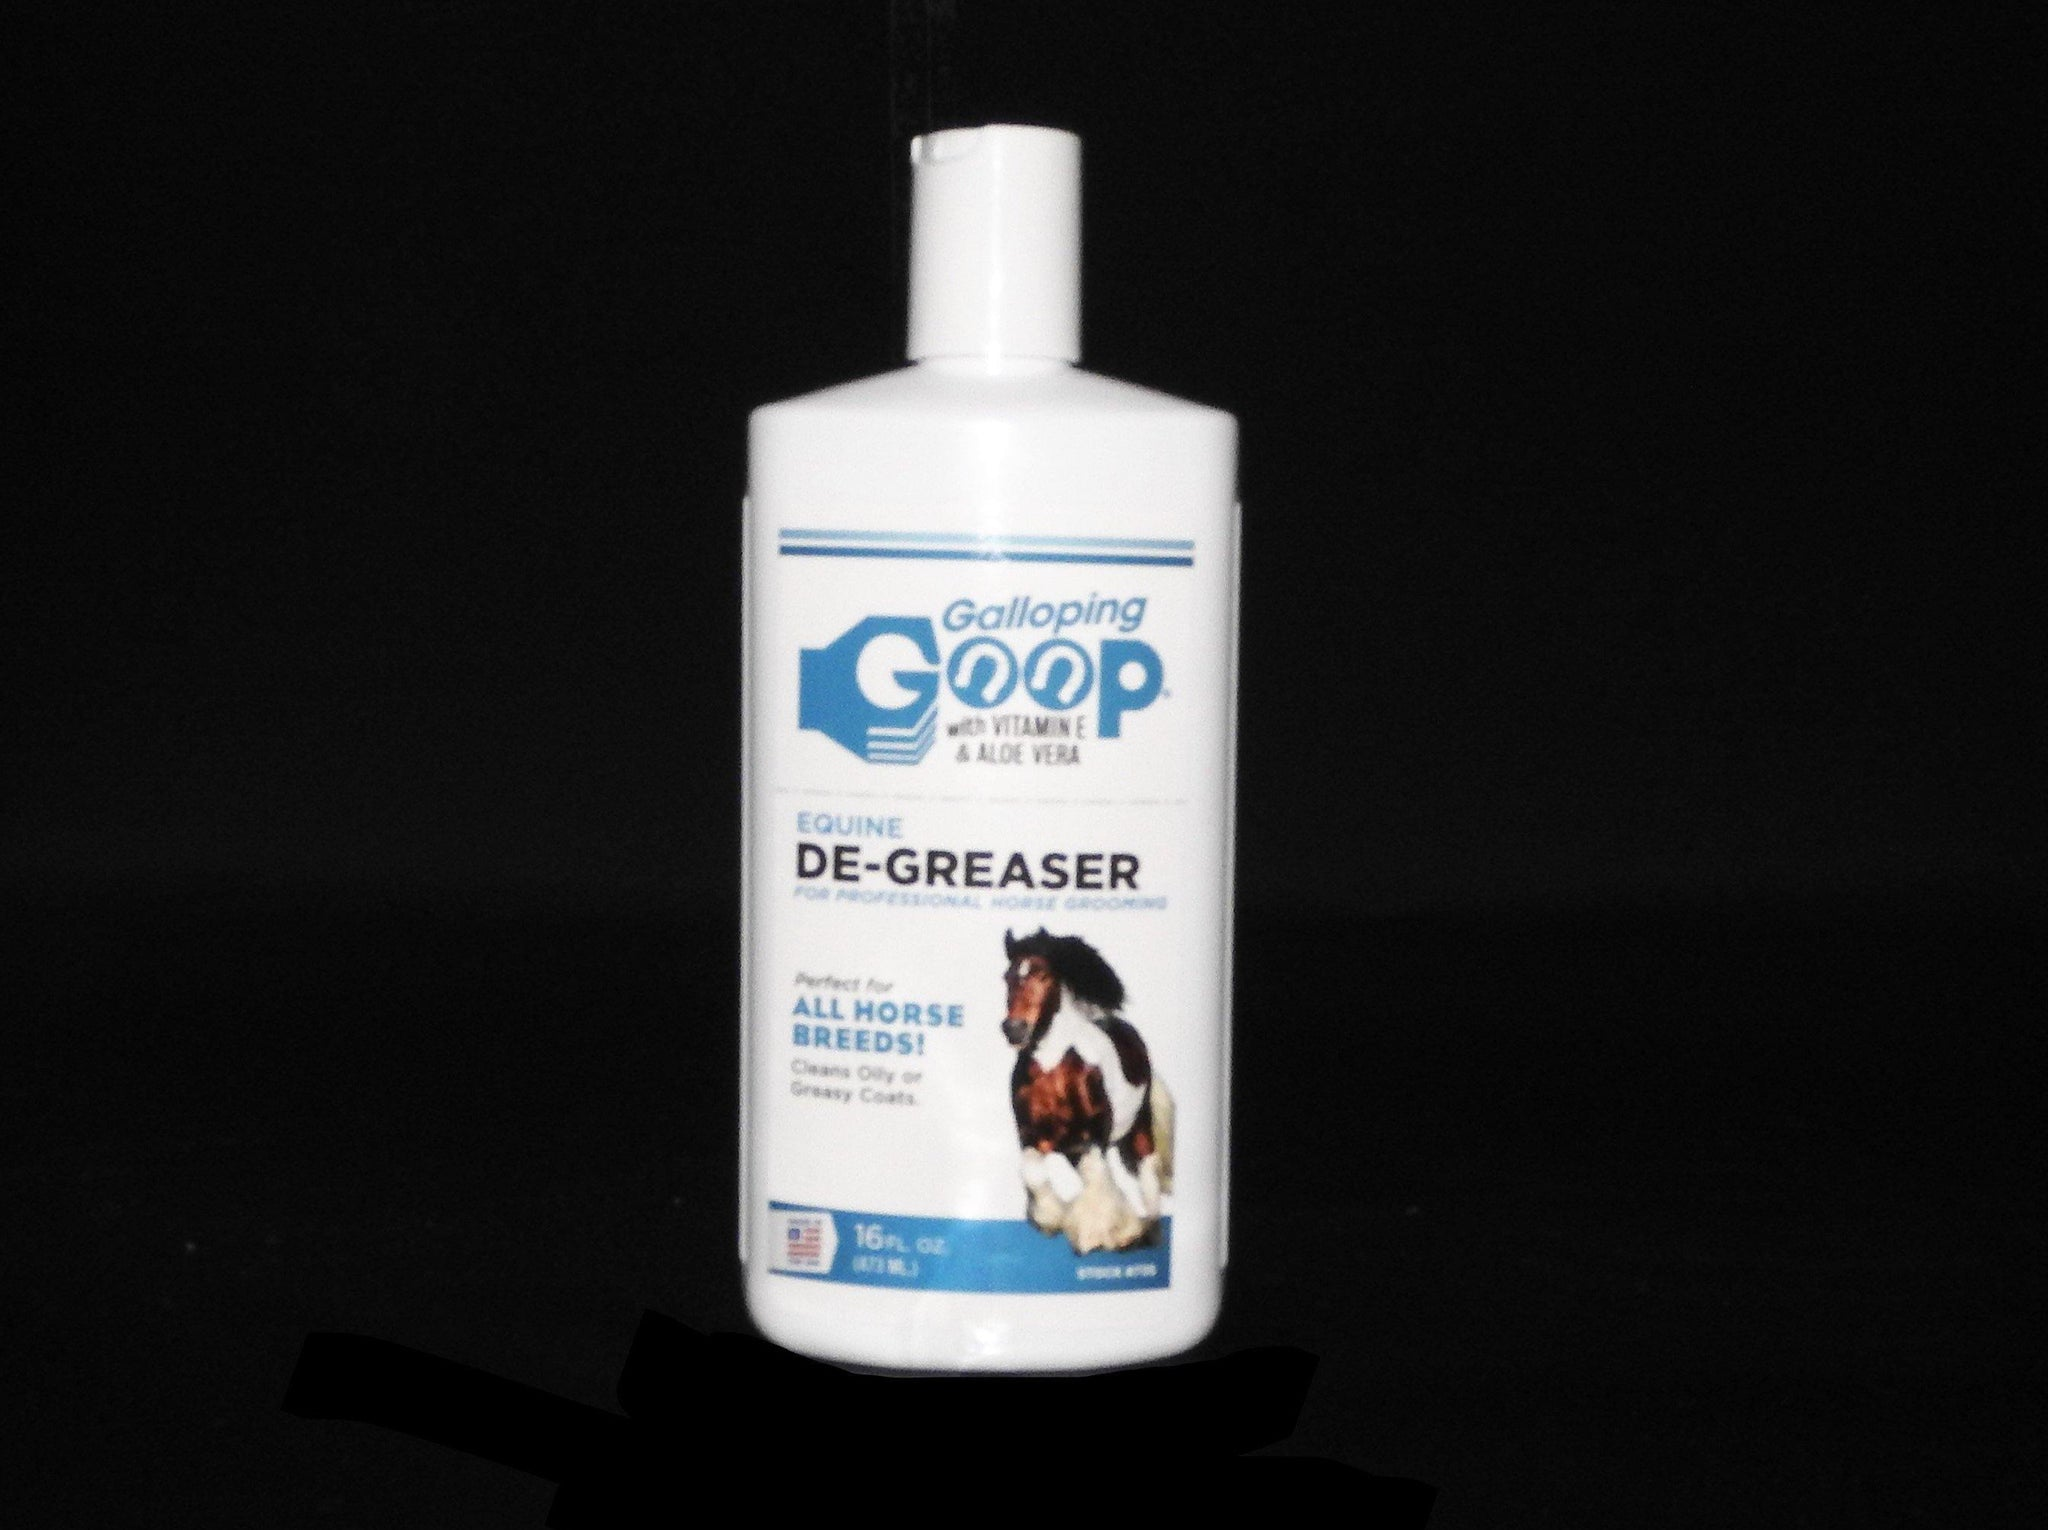 Galloping Goop De-Greaser - Equine Passion